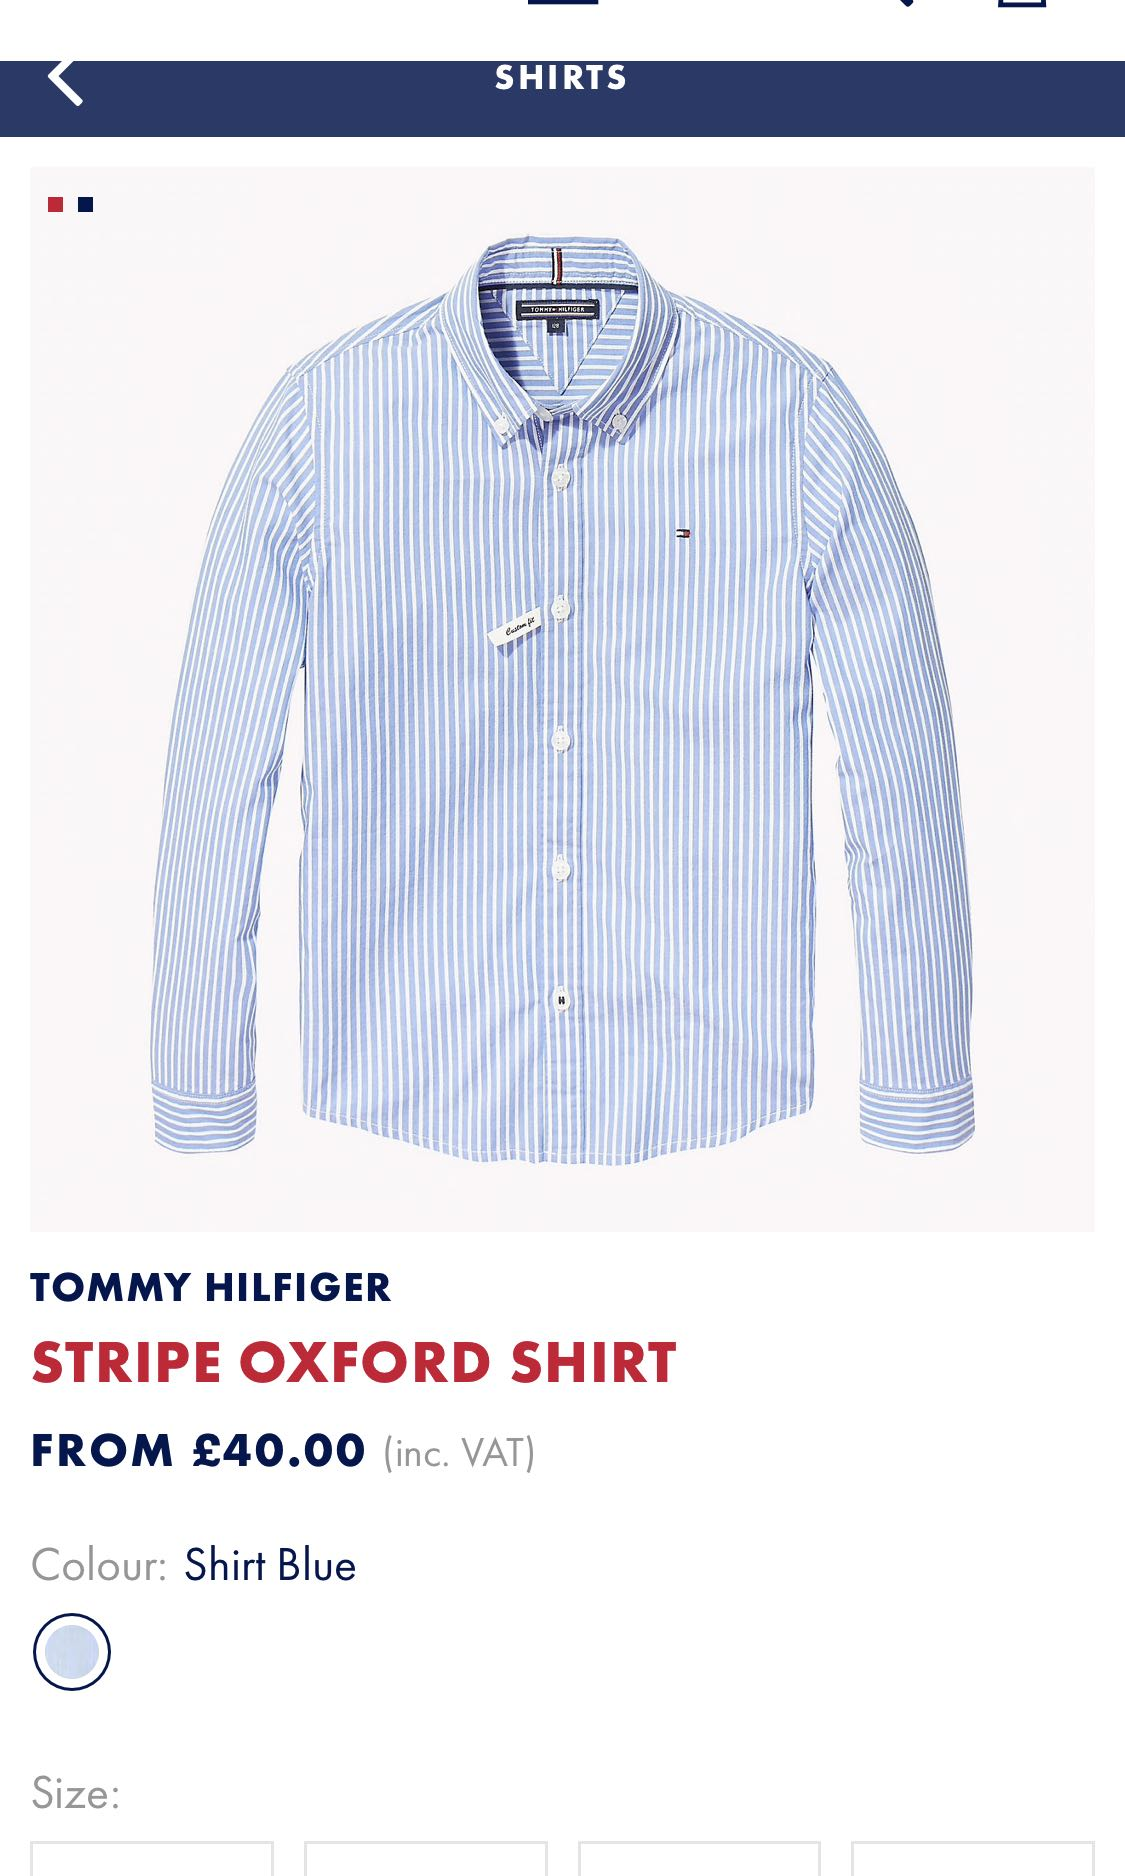 0c147c0c6 TOMMY HILFIGER Authentic Stripe Oxford Shirt, Men's Fashion, Clothes ...